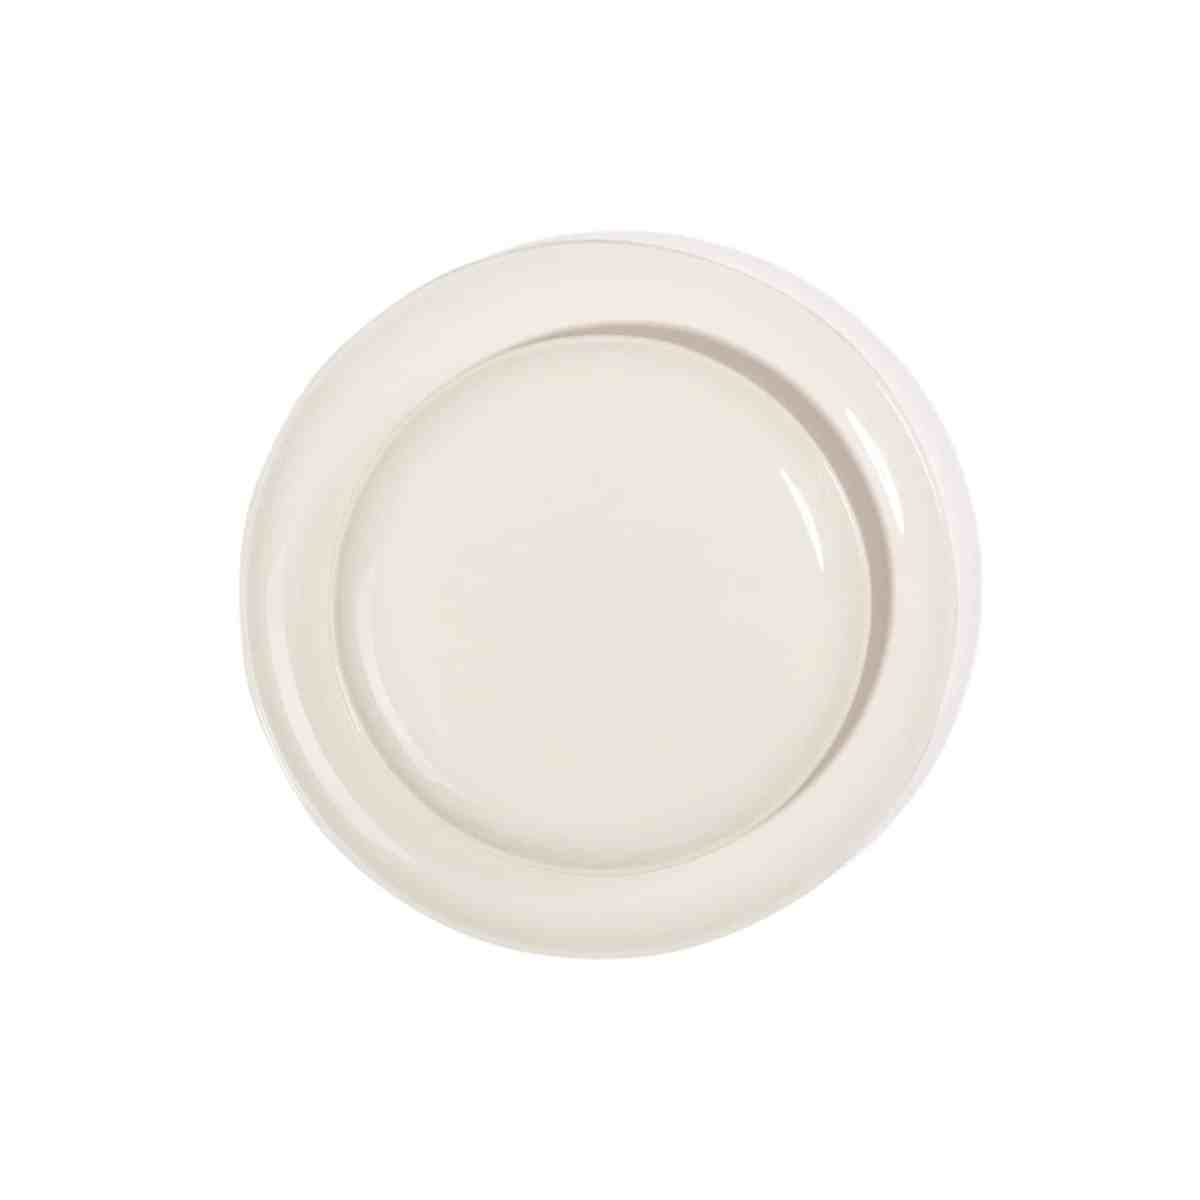 Another-country-pottery-plate-side-natural-004